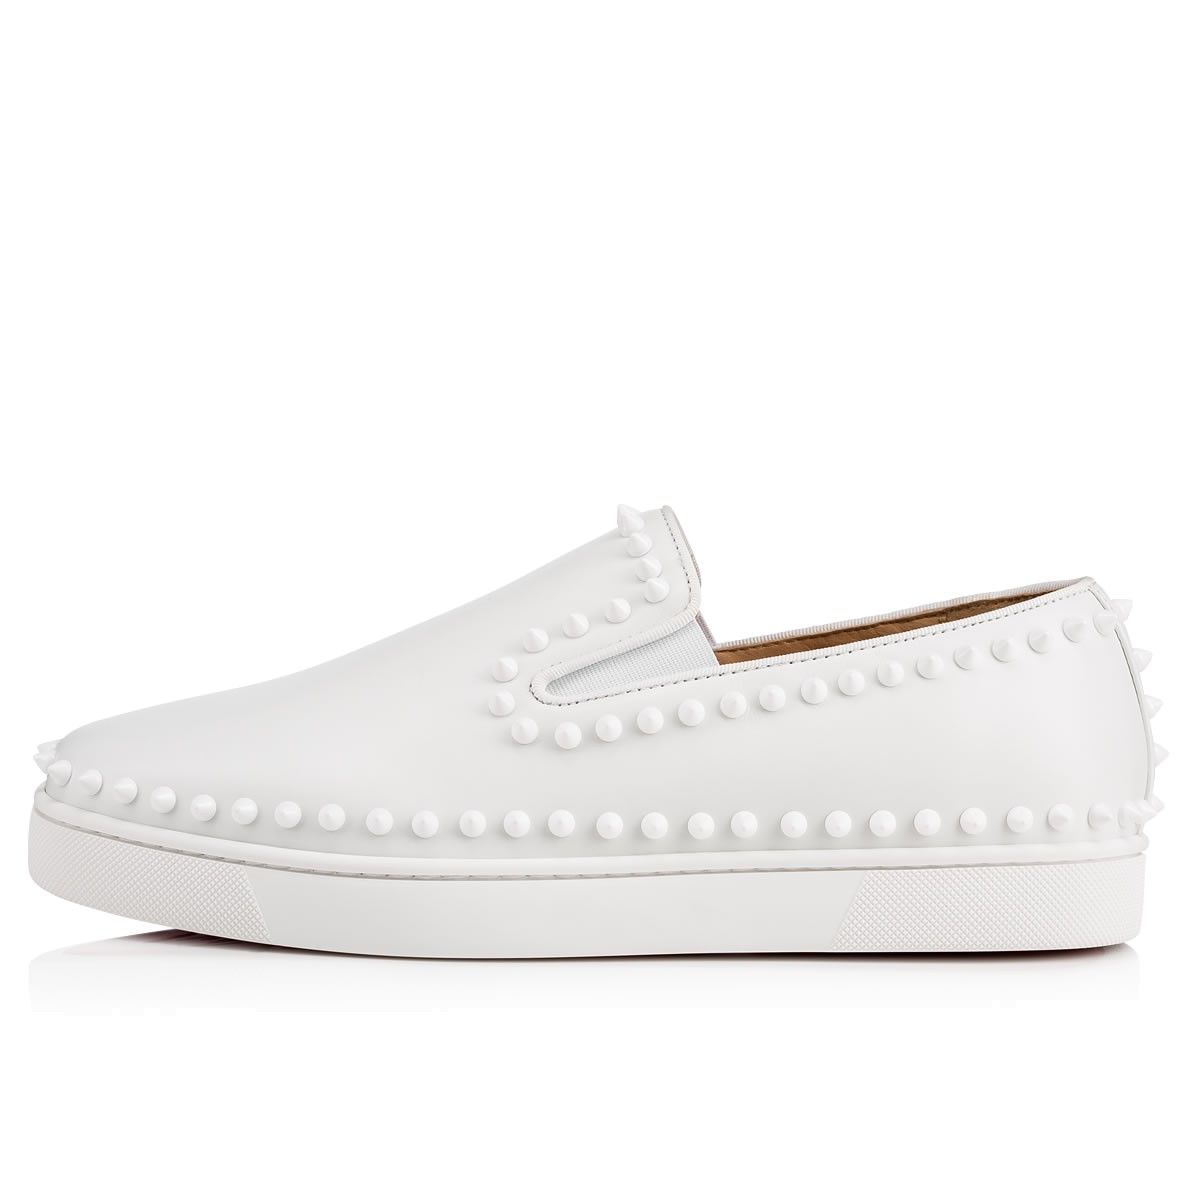 Souliers Homme - Pik Boat - Christian Louboutin